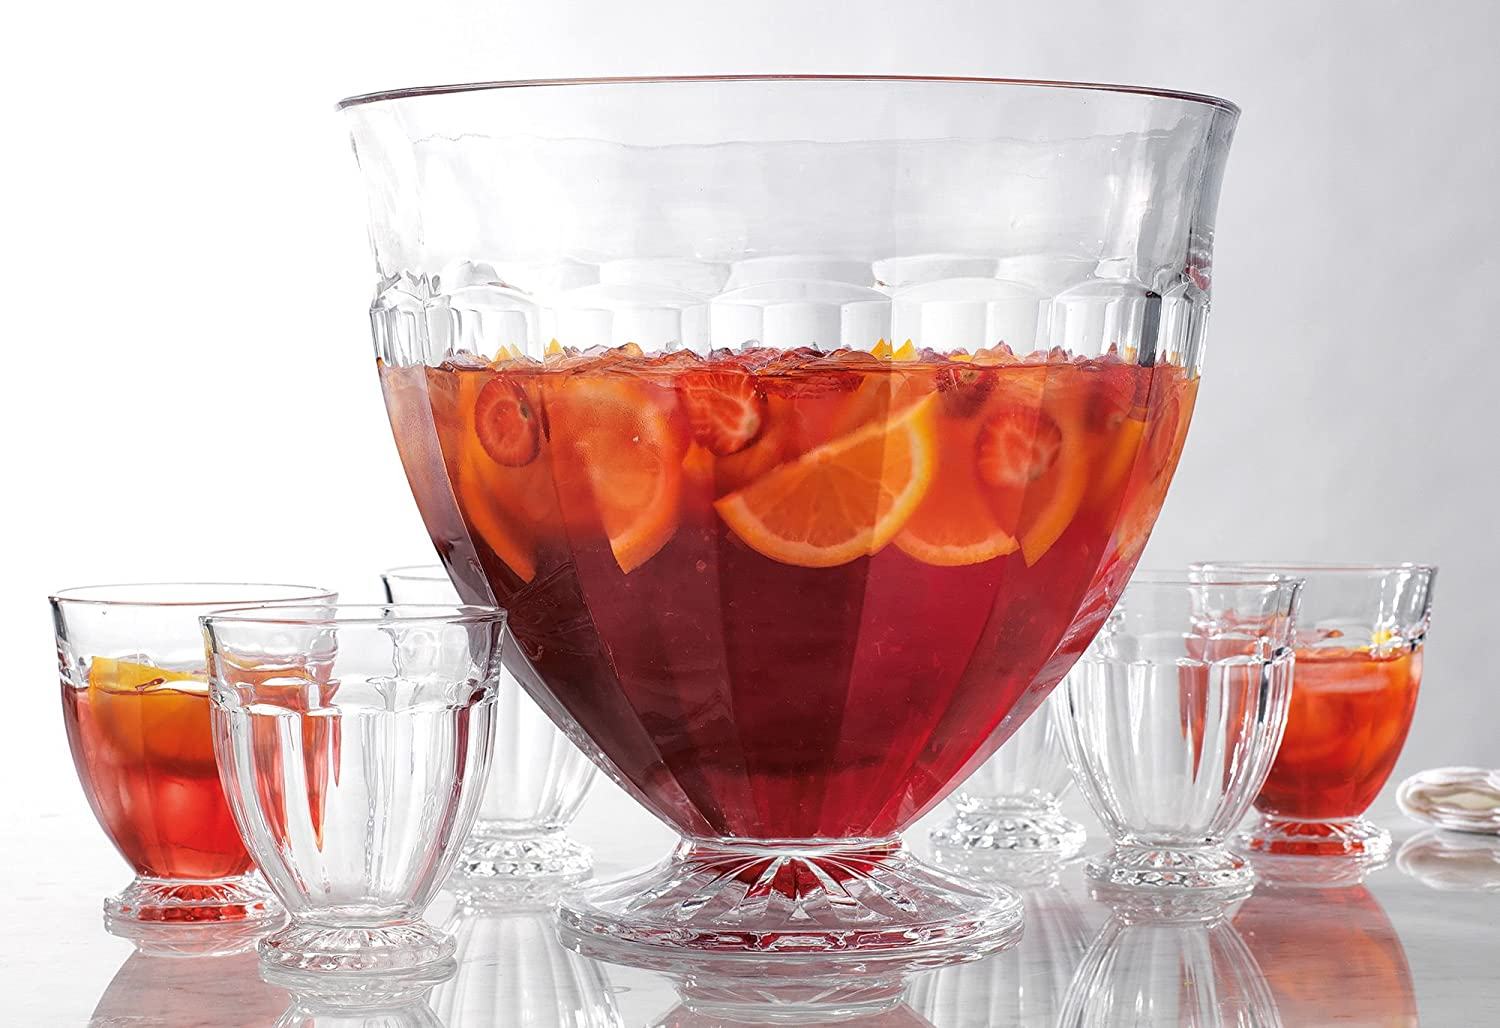 Decorative Large Punch Bowl with 6 Individual Cups - For Ice Cream, Sundae, Punch, Appetizer, Fruit, Pudding & Cocktail, Parties, Events, Buffet, Salads, Fruits, Vegetables, Le'raze